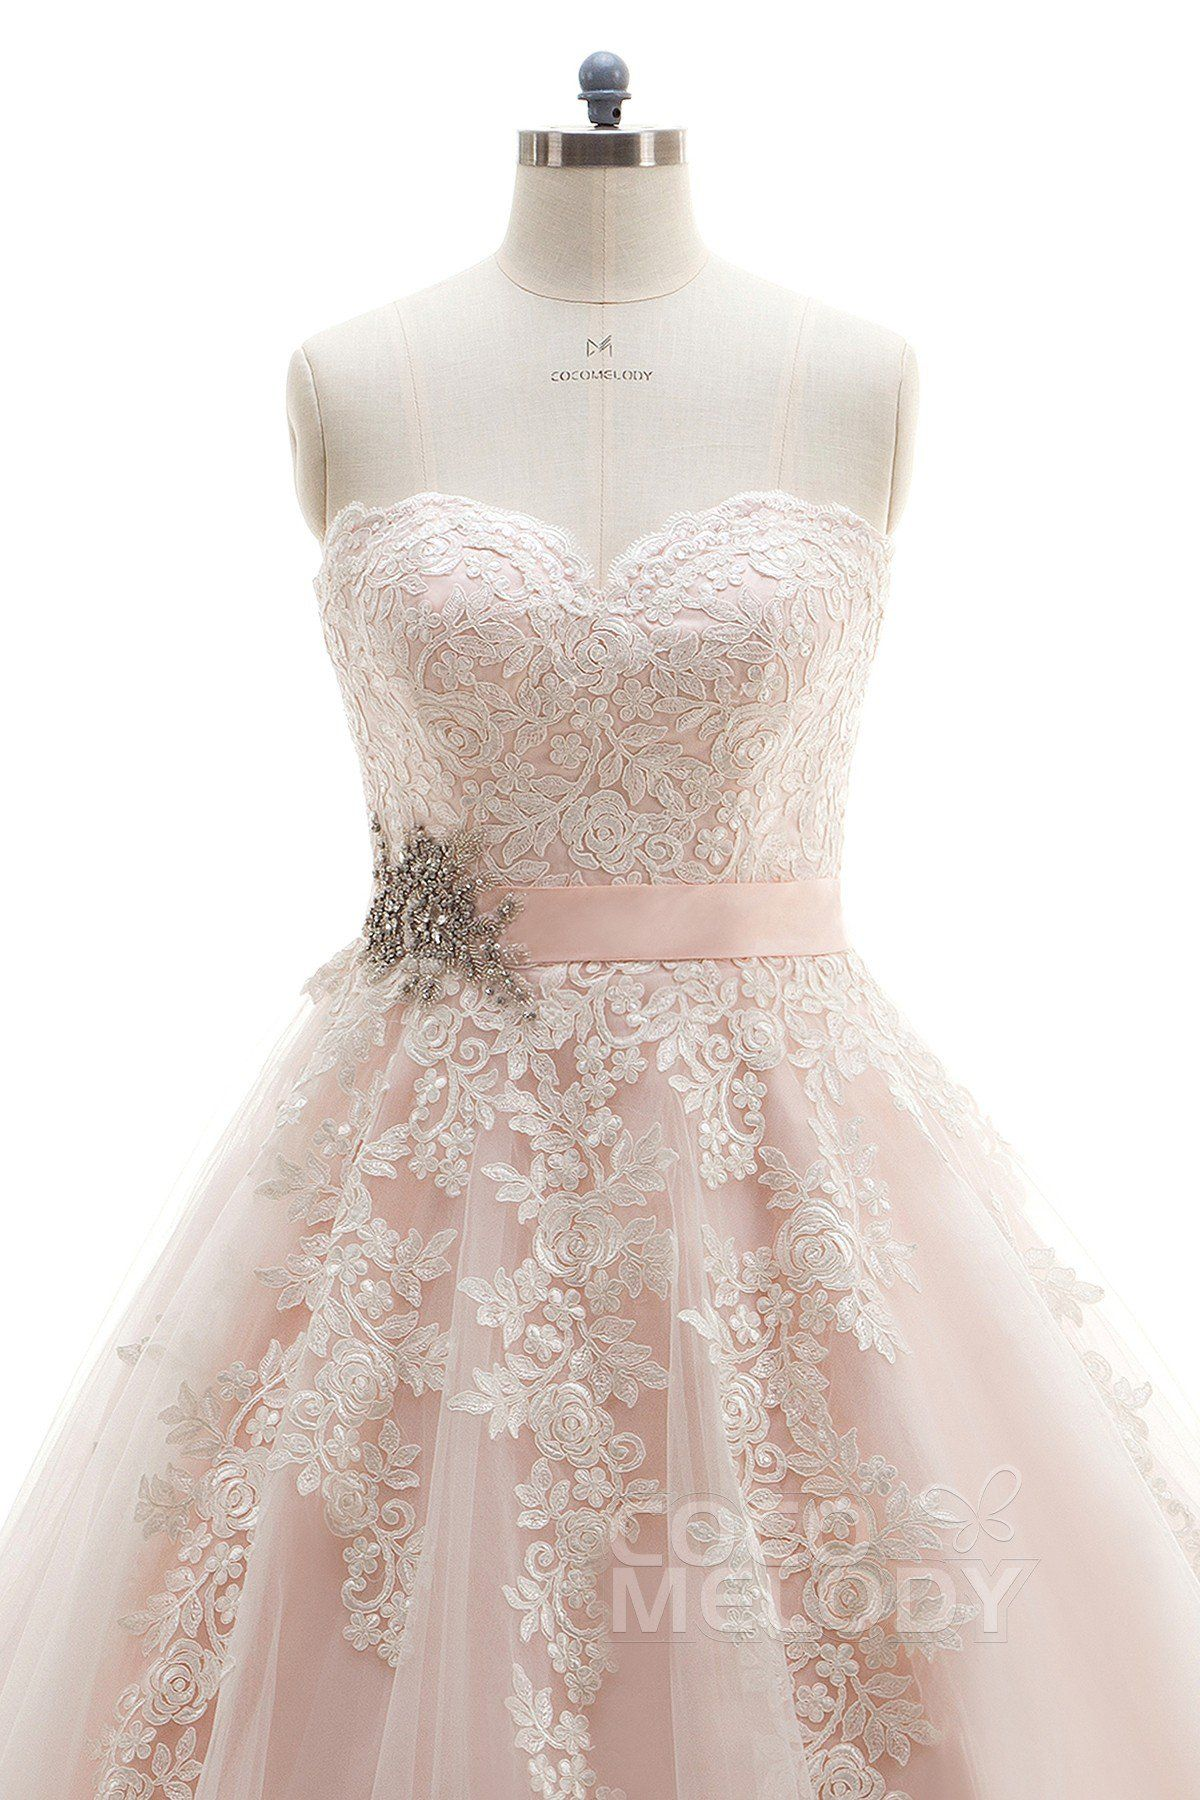 Champagne and ivory wedding dress  Charming ALine Sweetheart Natural Court Train Tulle and Lace Ivory